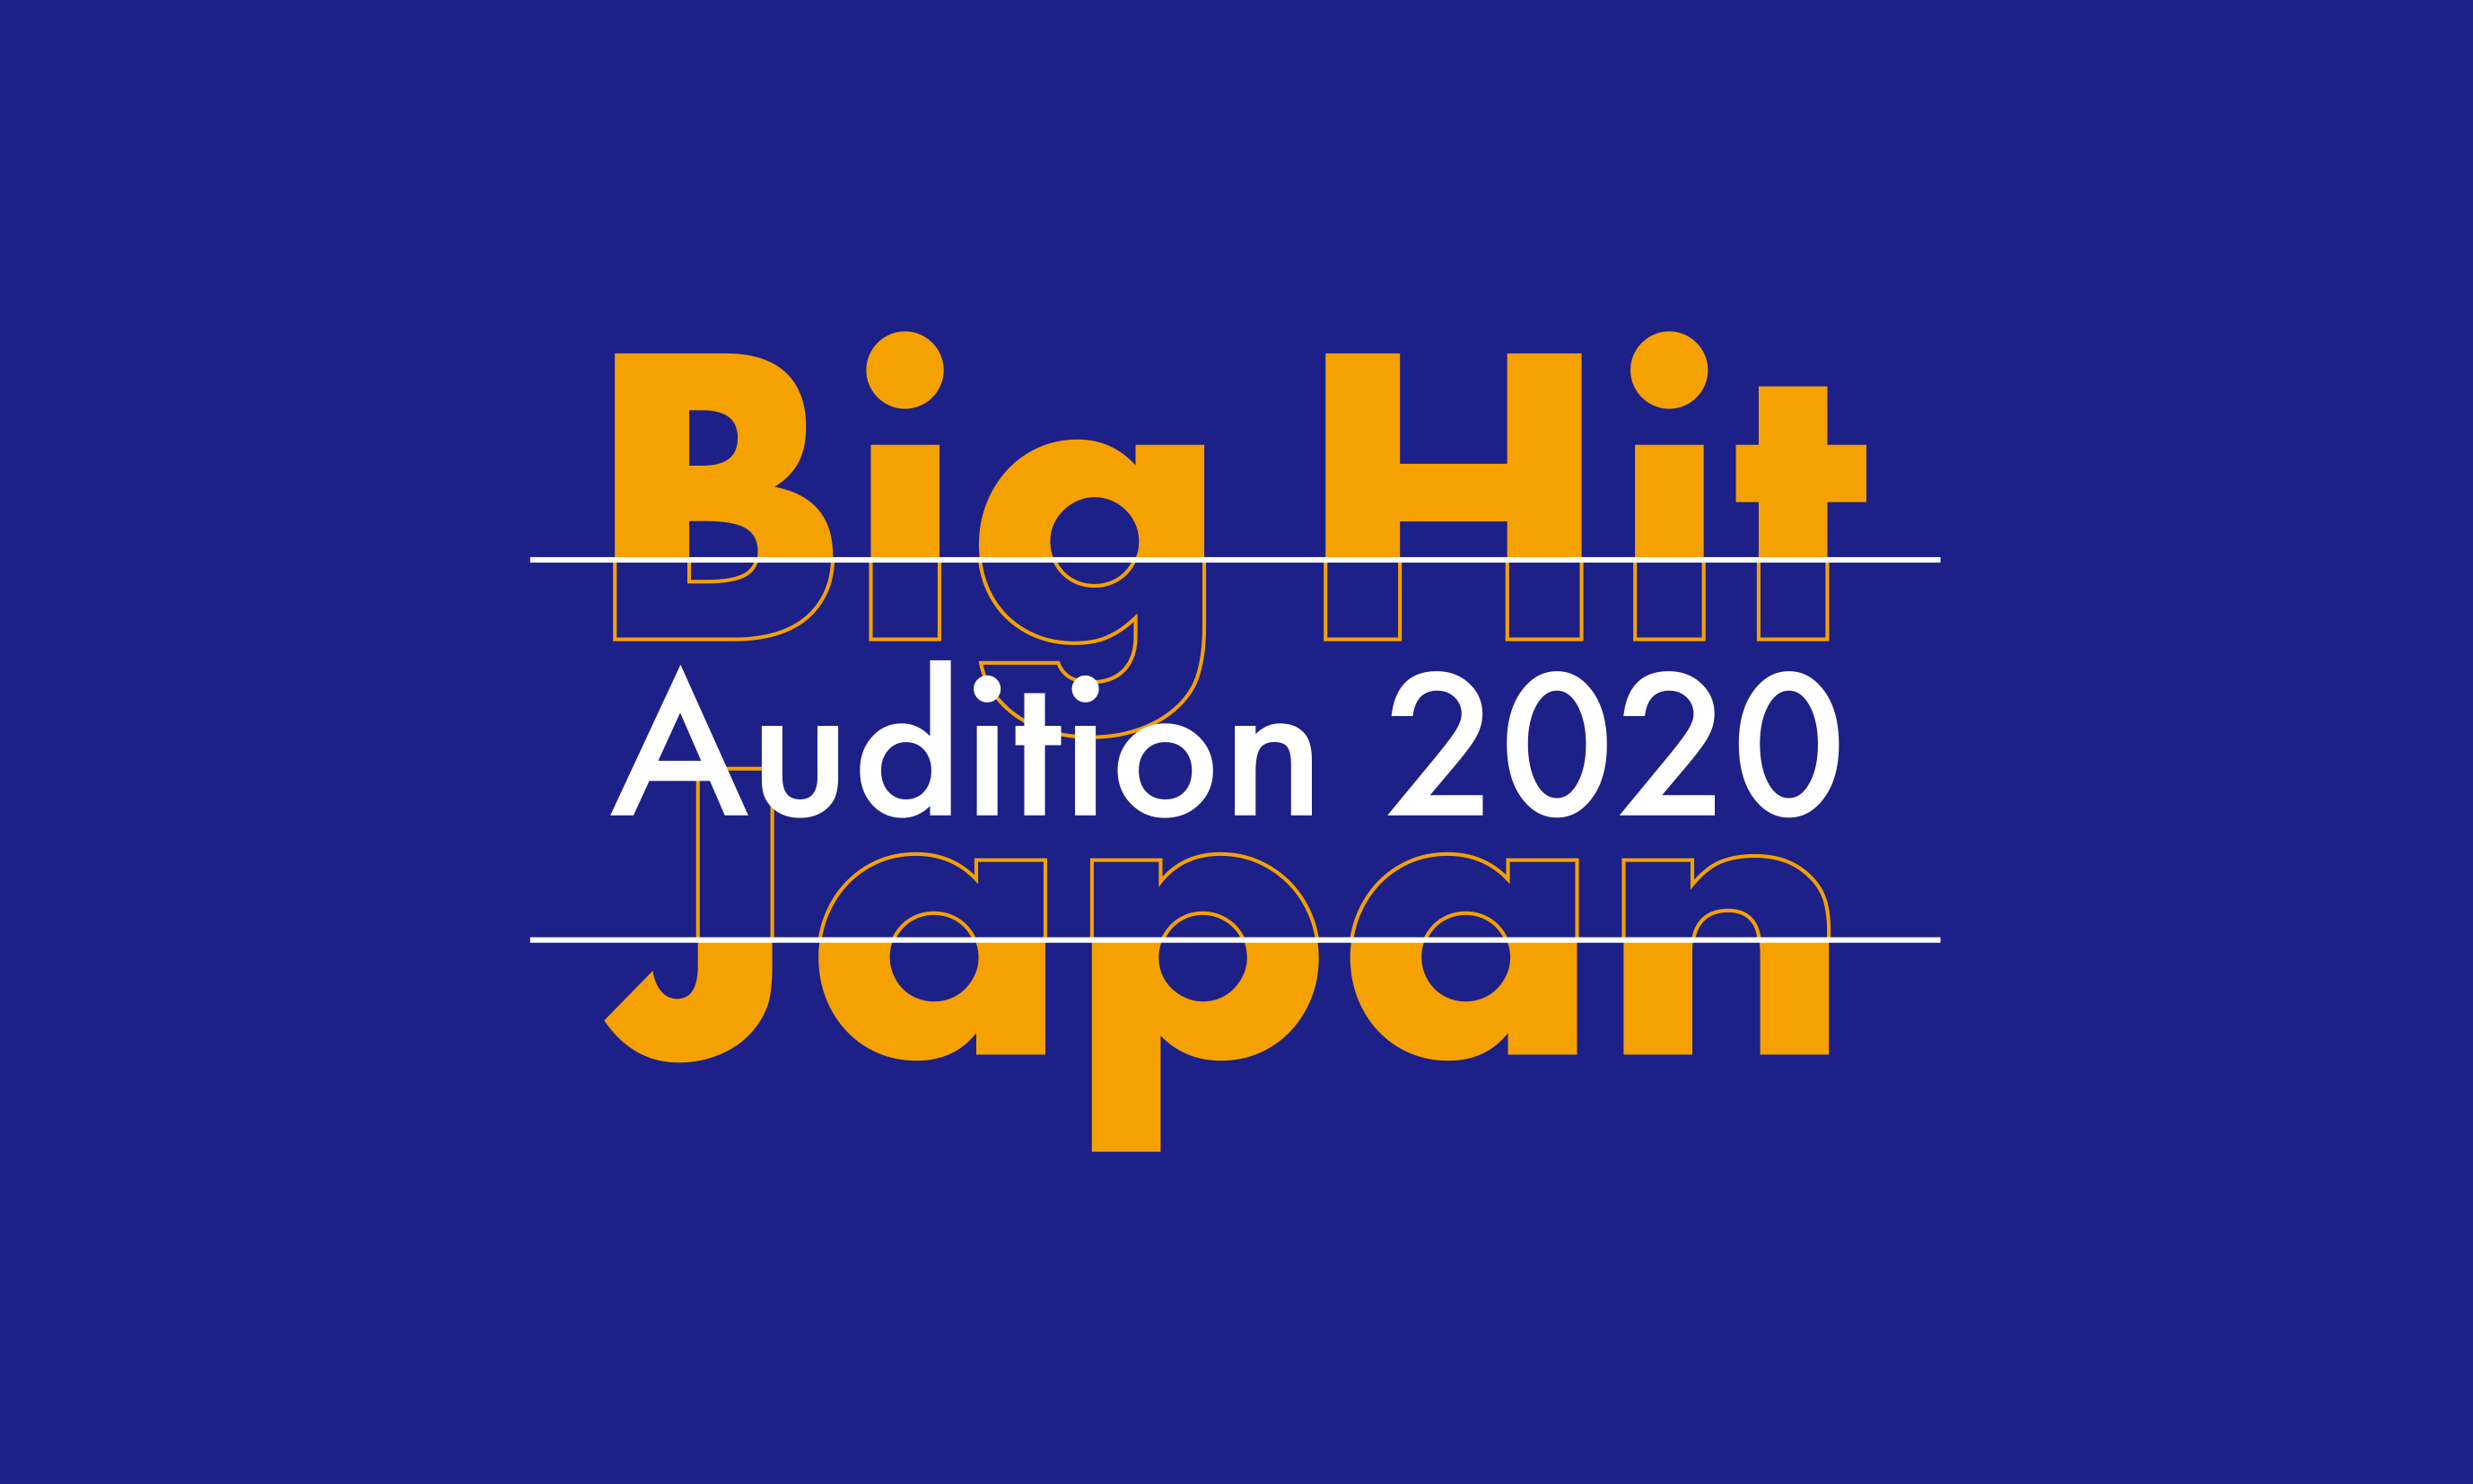 Big Hit Japan Audition 2020